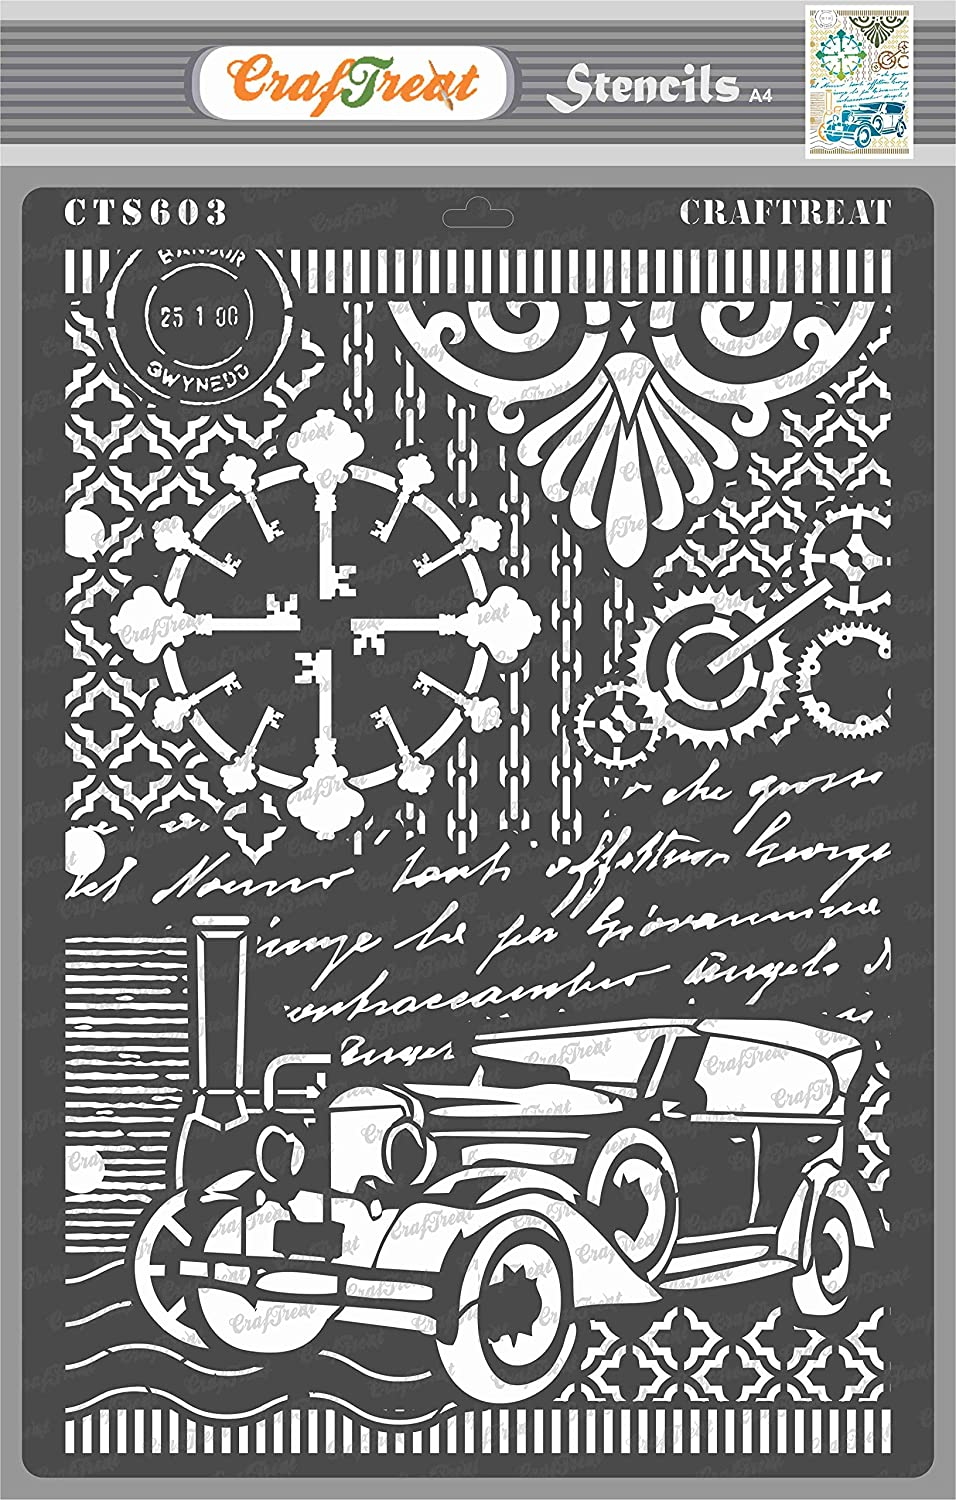 CrafTreat Car Stencils for Painting on Wood, Canvas, Paper, Fabric, Floor, Wall and Tile - Vintage Car - Size: A4 - Reusable DIY Art and Craft Stencils for Mixed Media Art - Car Stencils for Painting